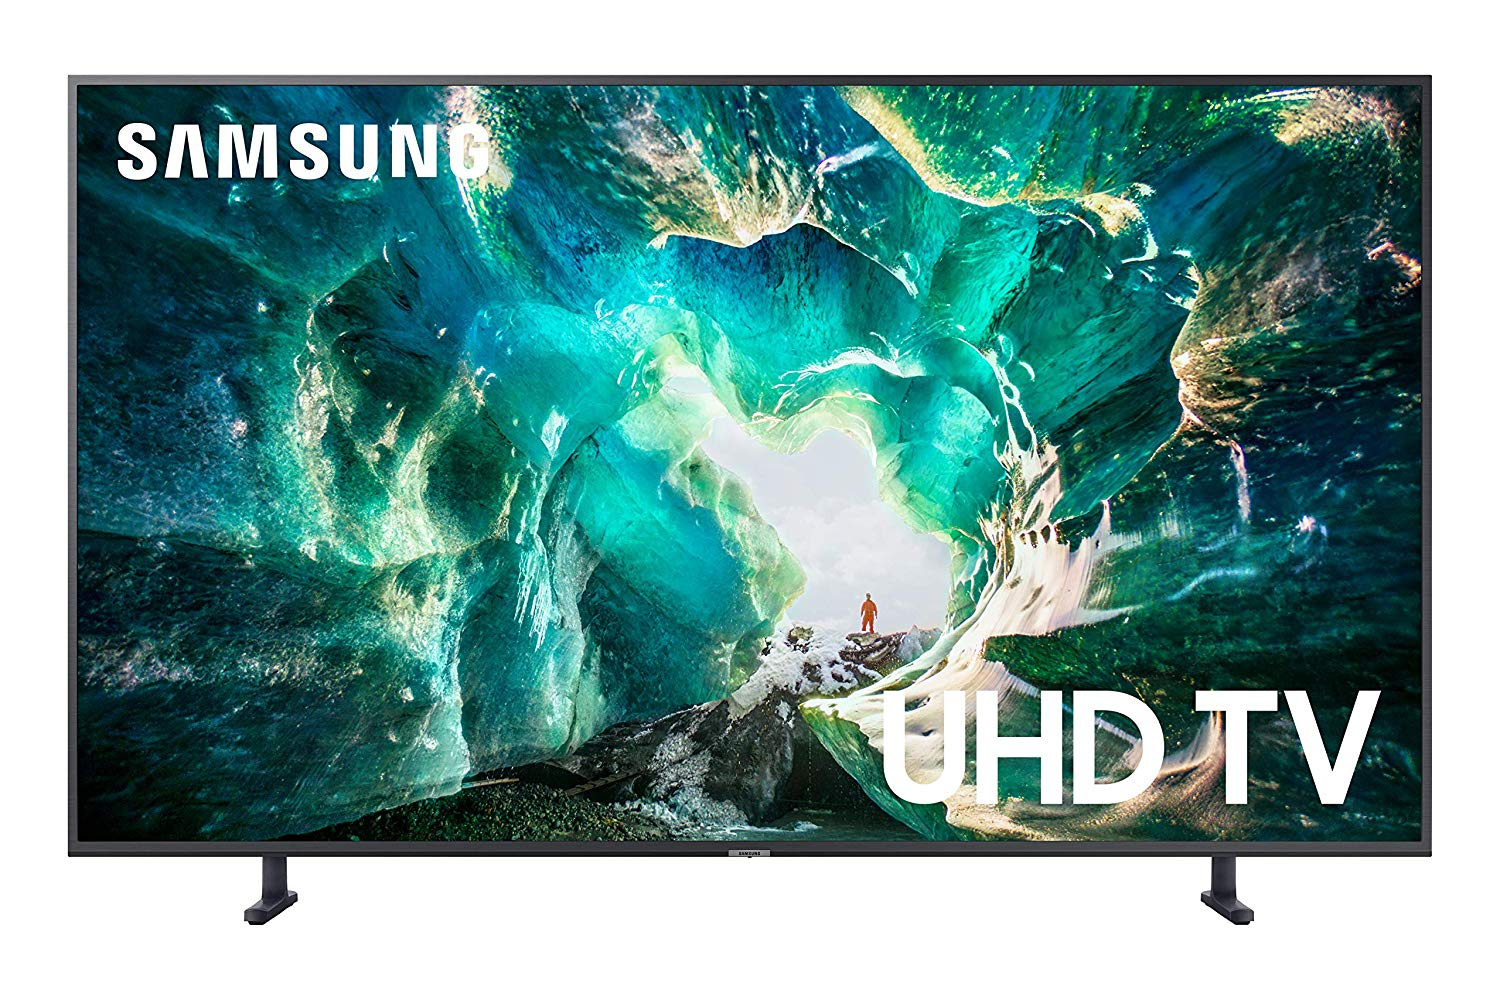 Samsung UN65RU7100FXZA Flat 65-Inch 4K UHD 7 Series Ultra HD Smart TV with HDR and Alexa Compatibility (2020 Model)